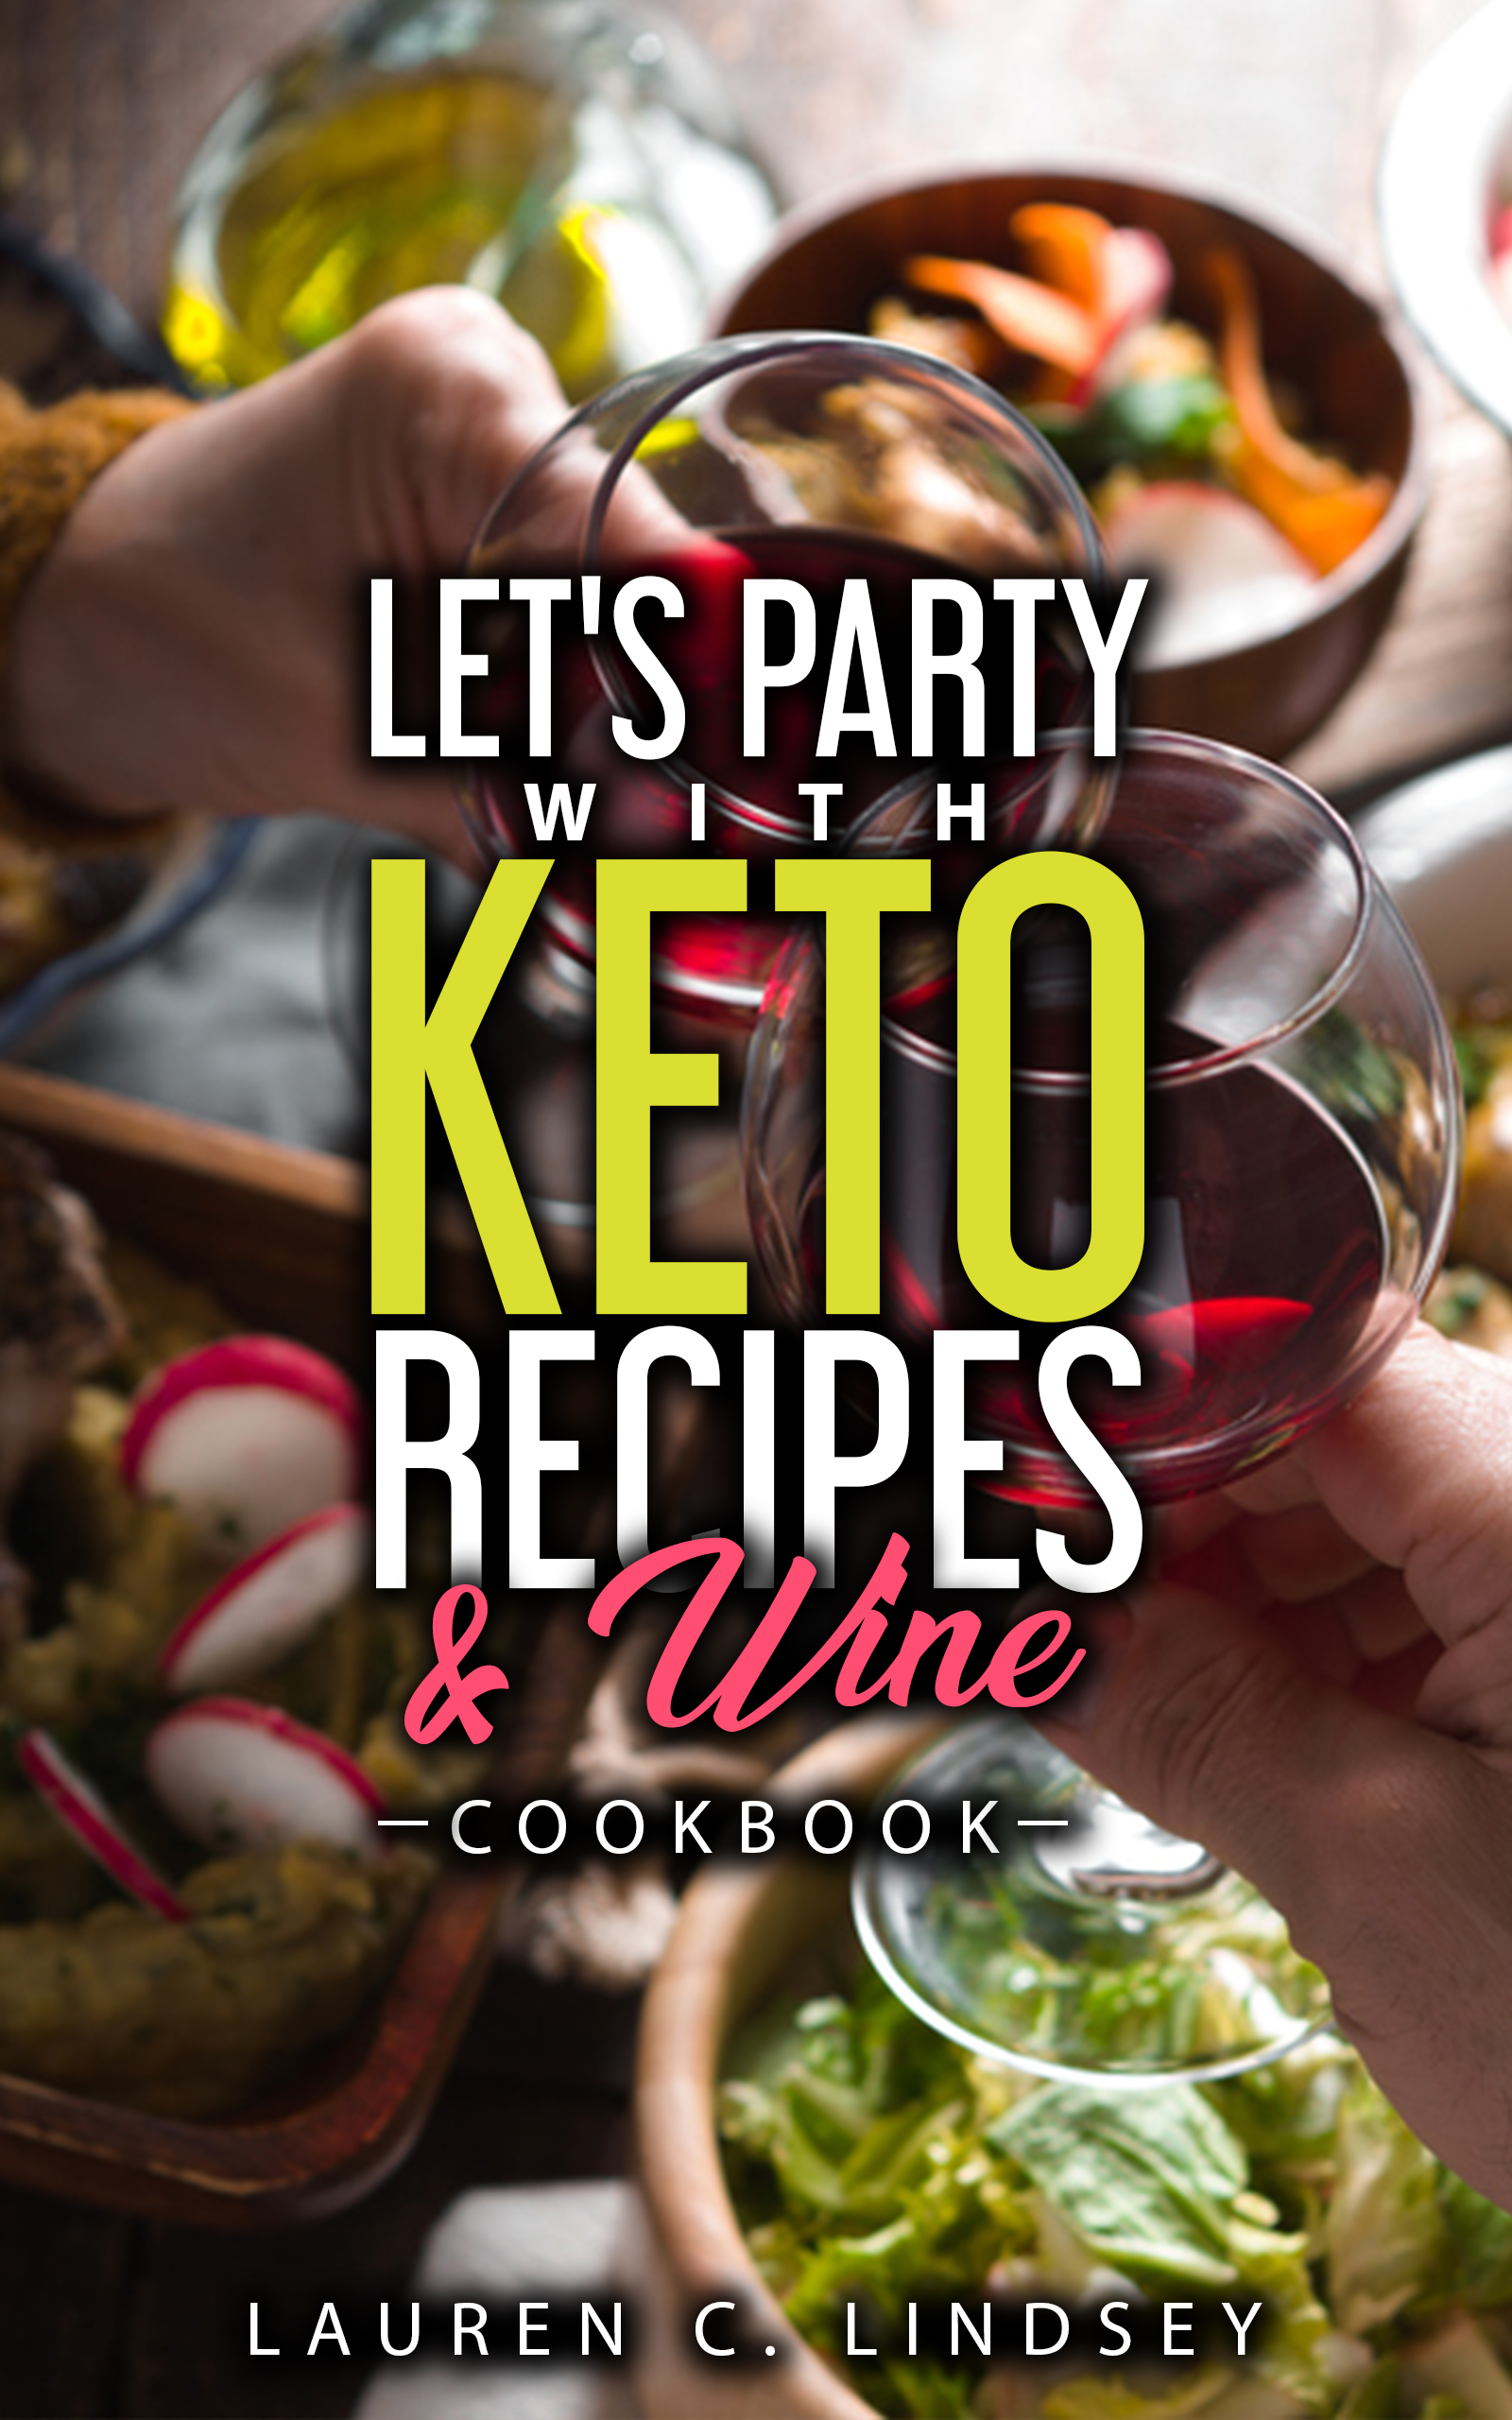 Featured Post: Let's Party With KETO Recipes & Wine by Lauren C. Lindsey